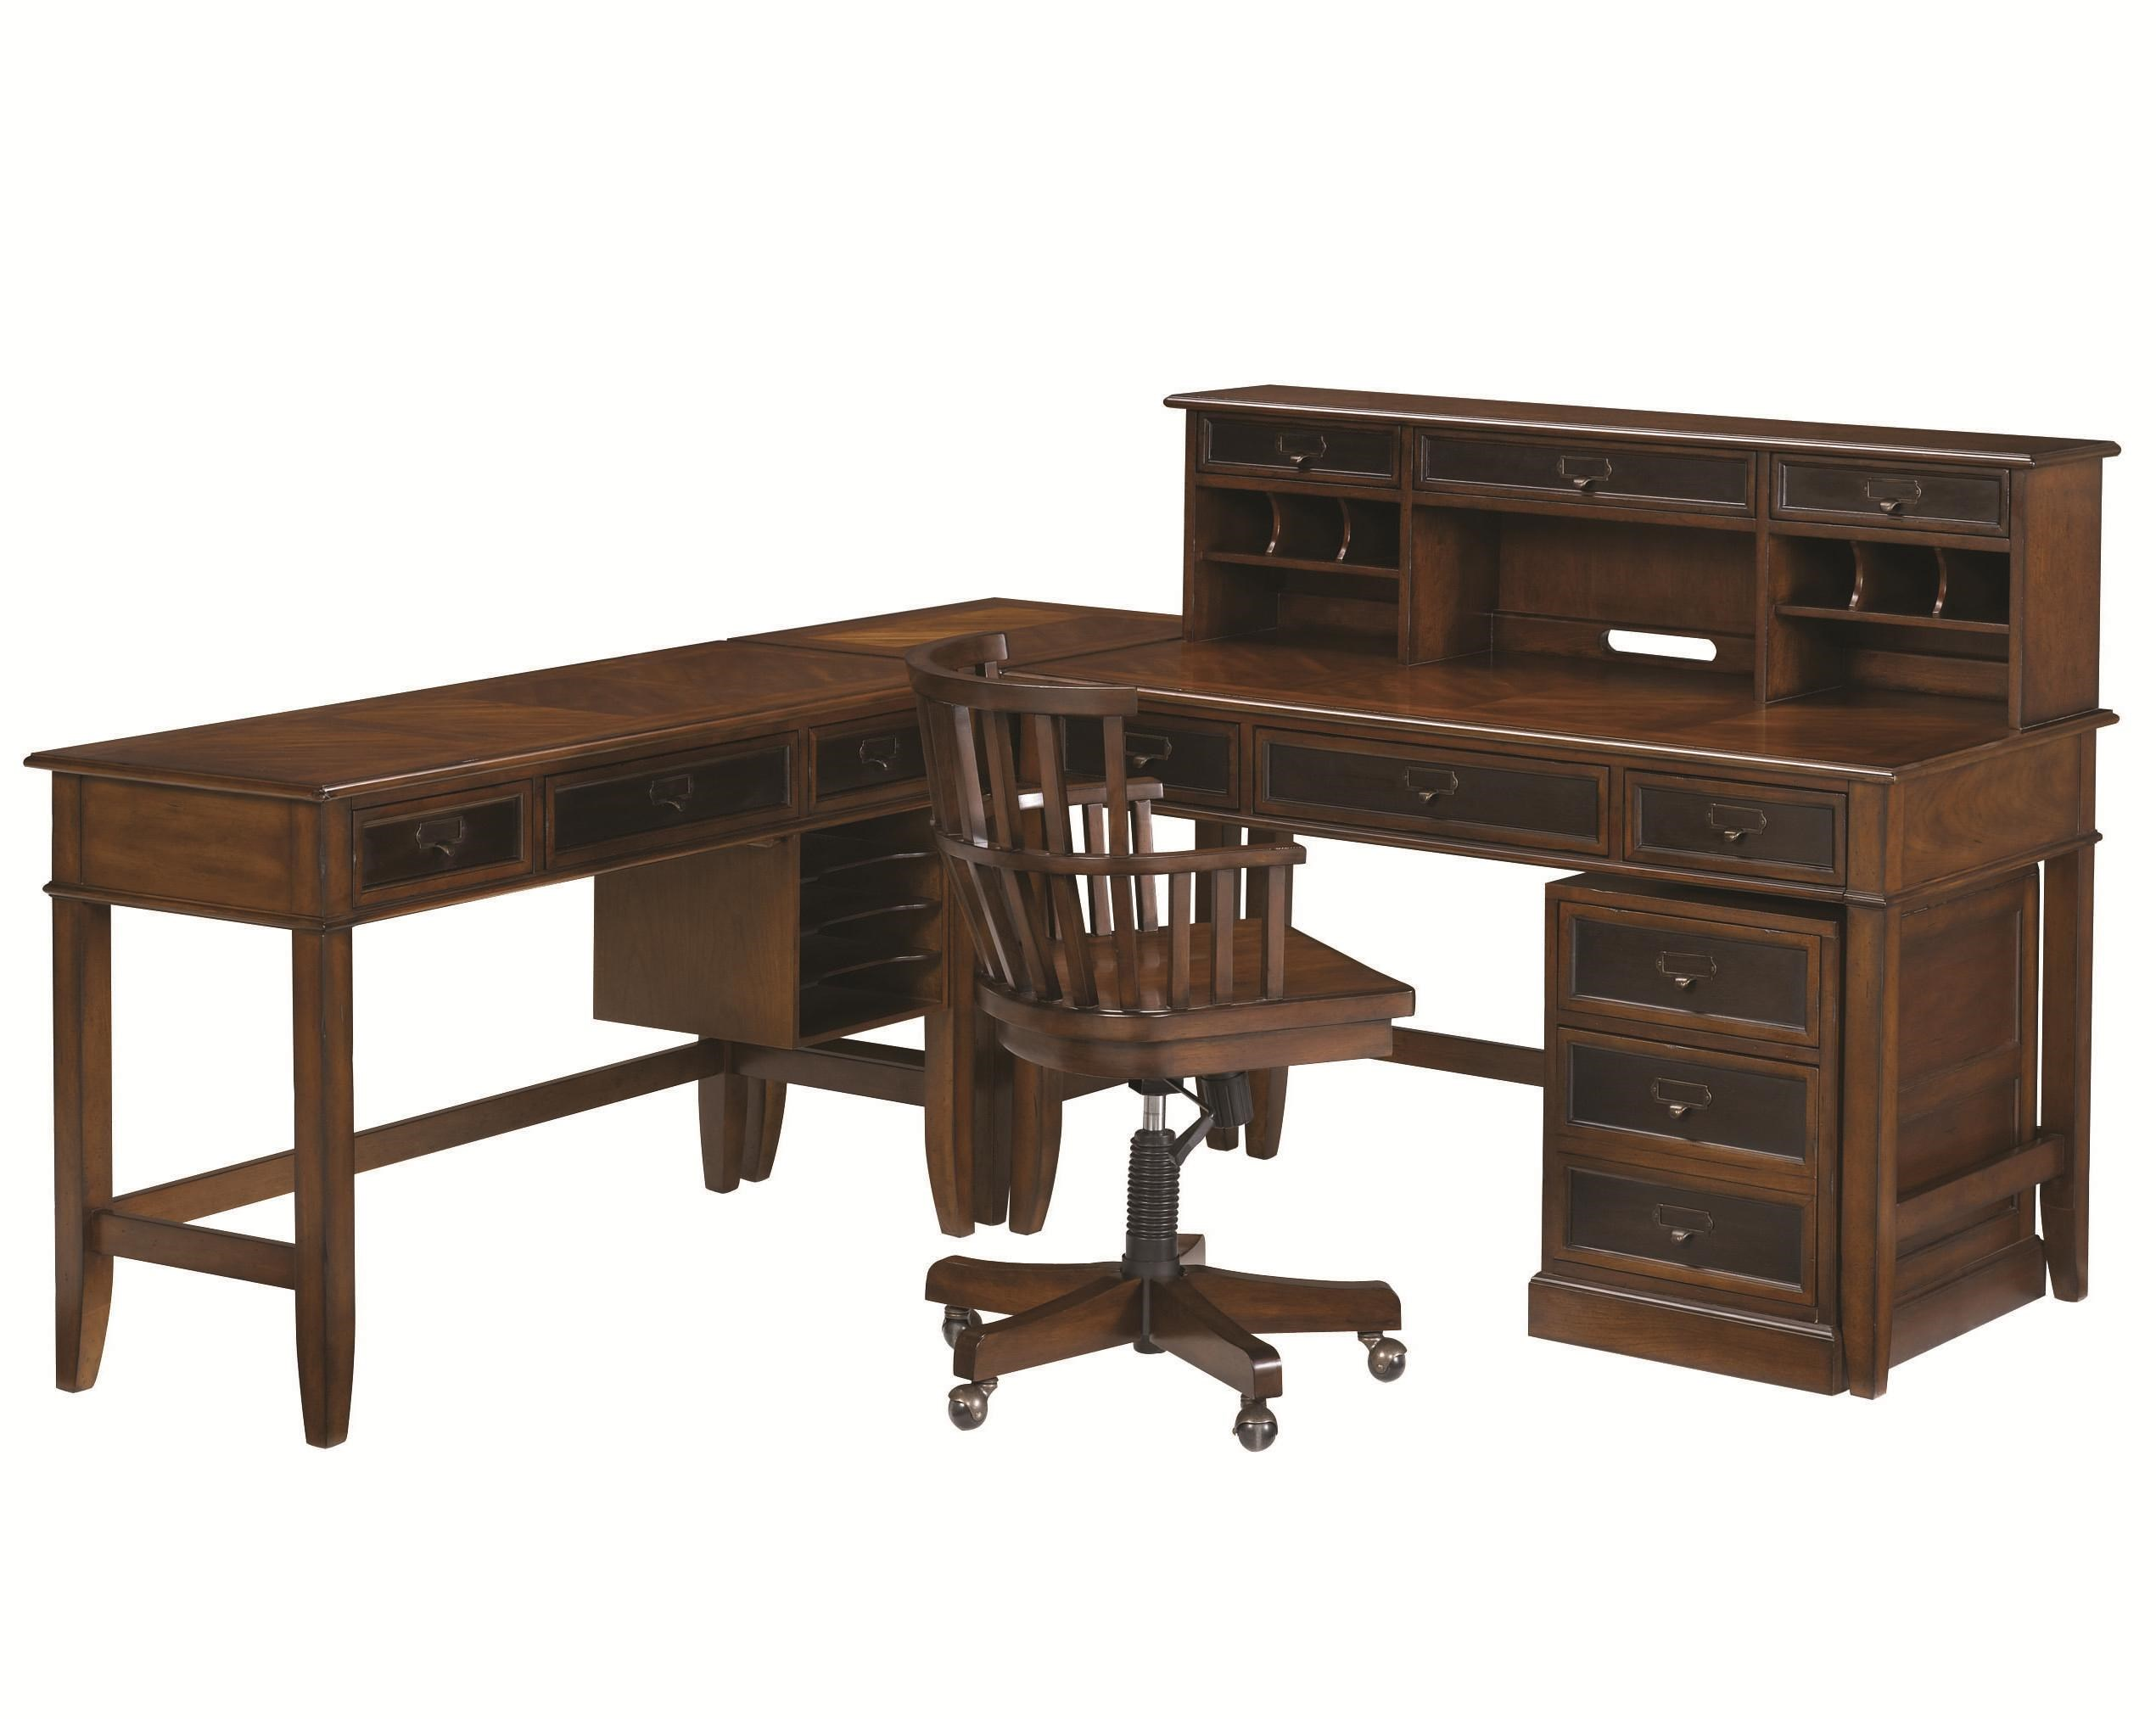 Merveilleux Morris Home MercantileL Shaped Desk And Credenza ...